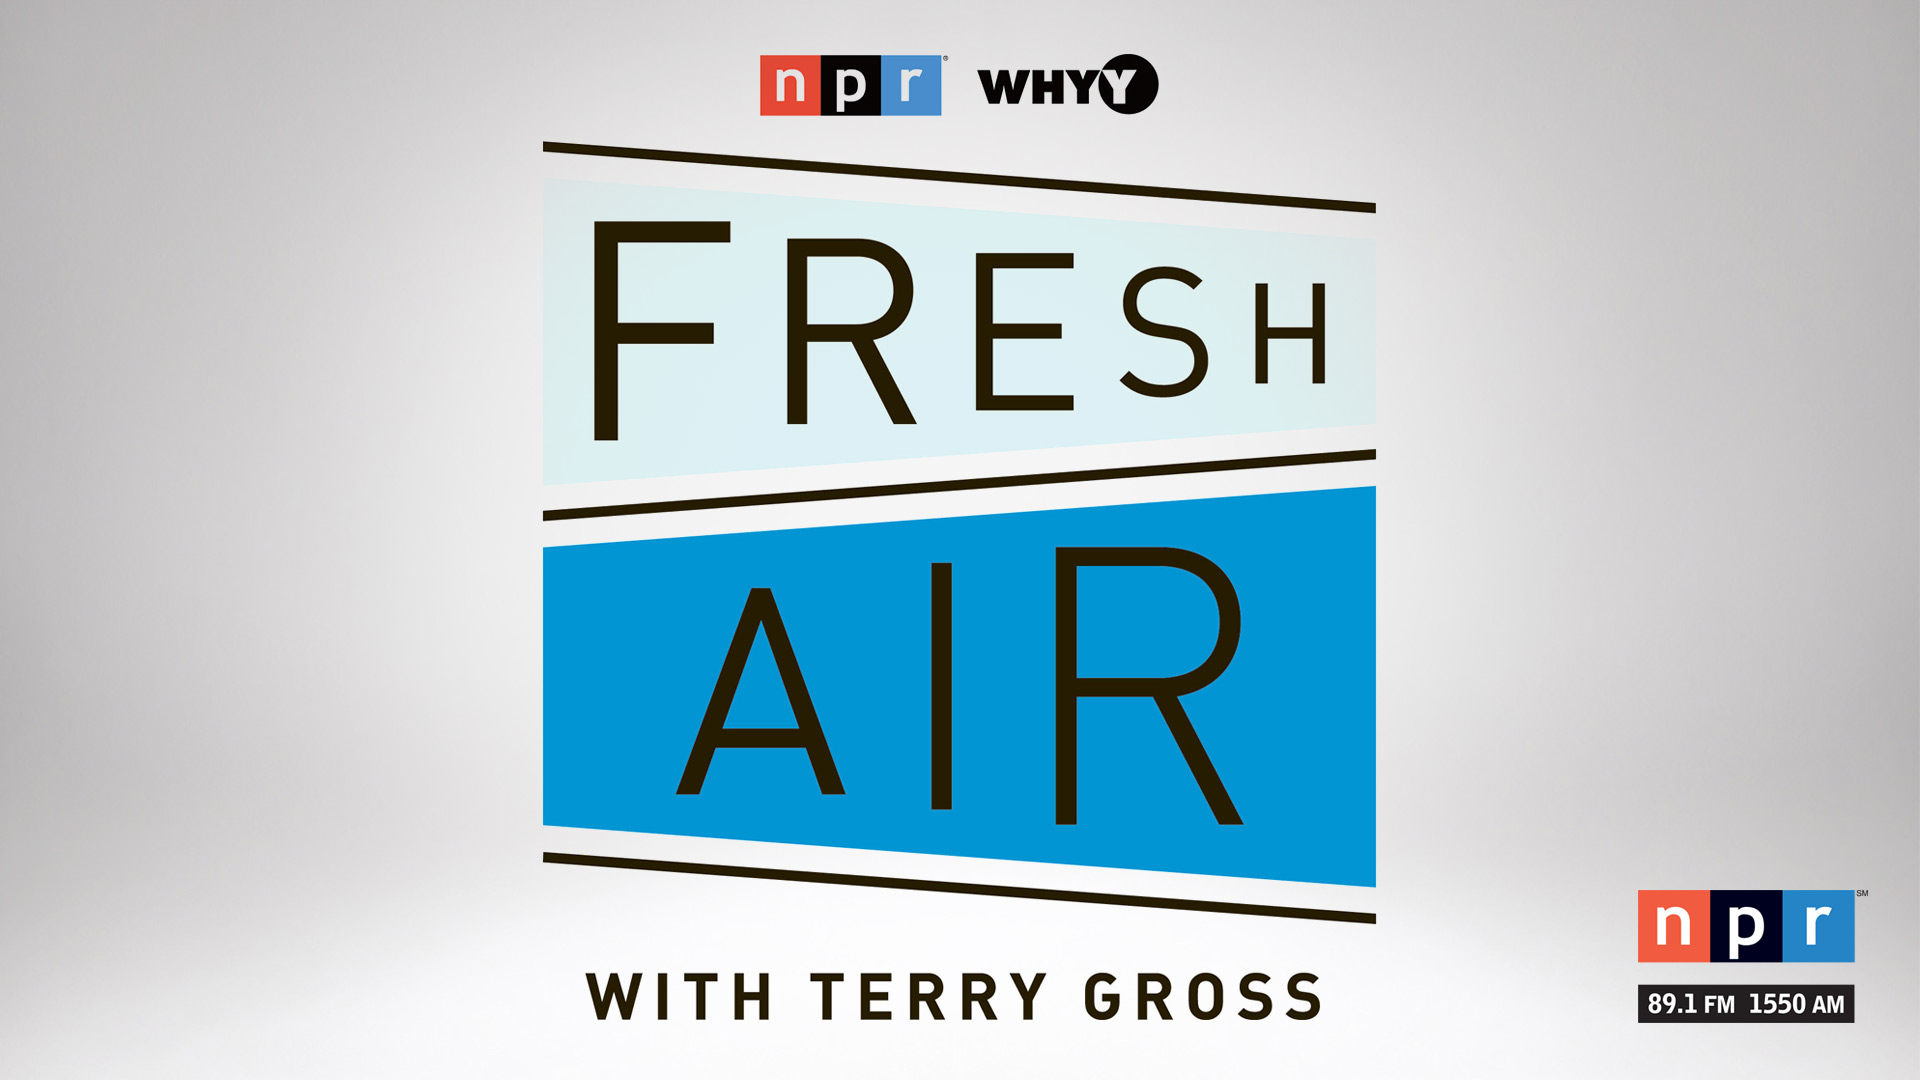 Fresh Air airs each weekday on NPR 89.1.